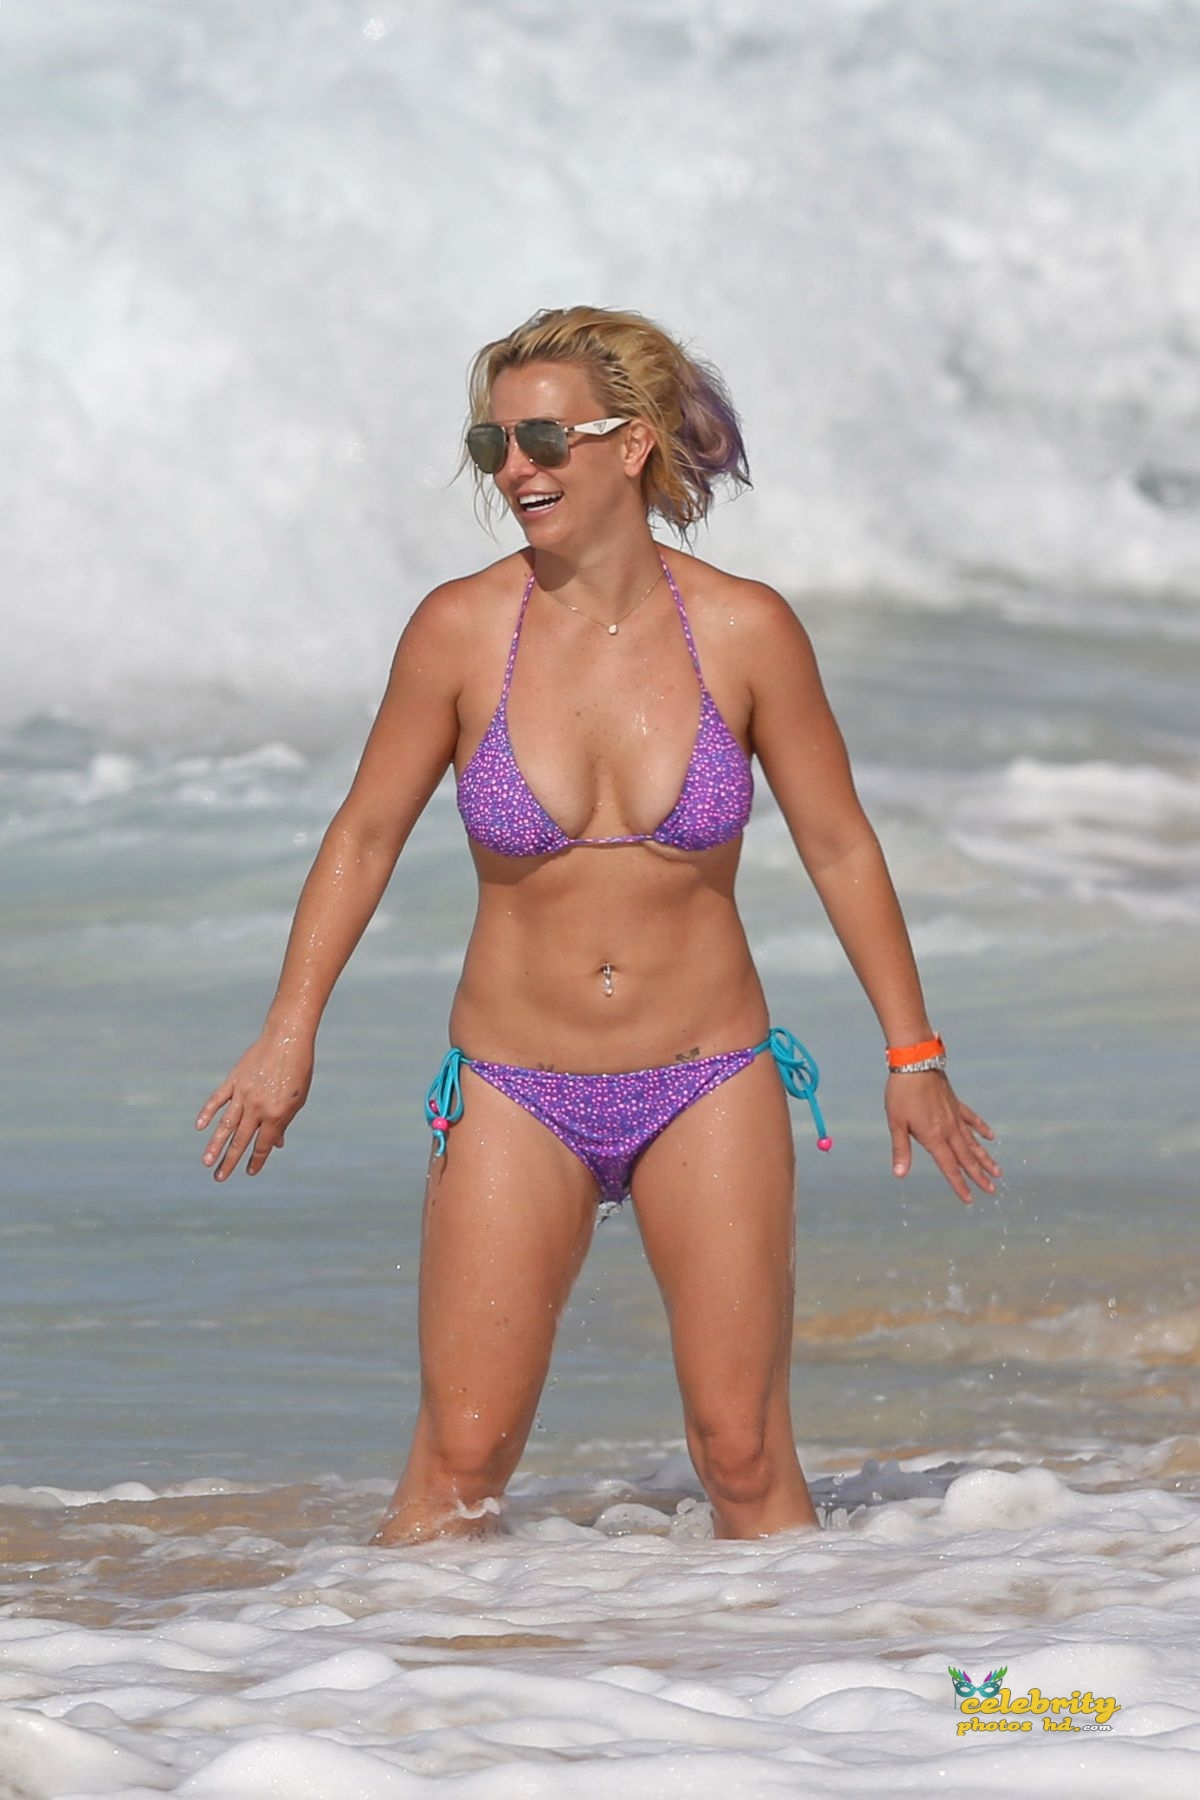 britney-spears-in-bikini-at-a-beach-in-hawaii-07-23-2015_1